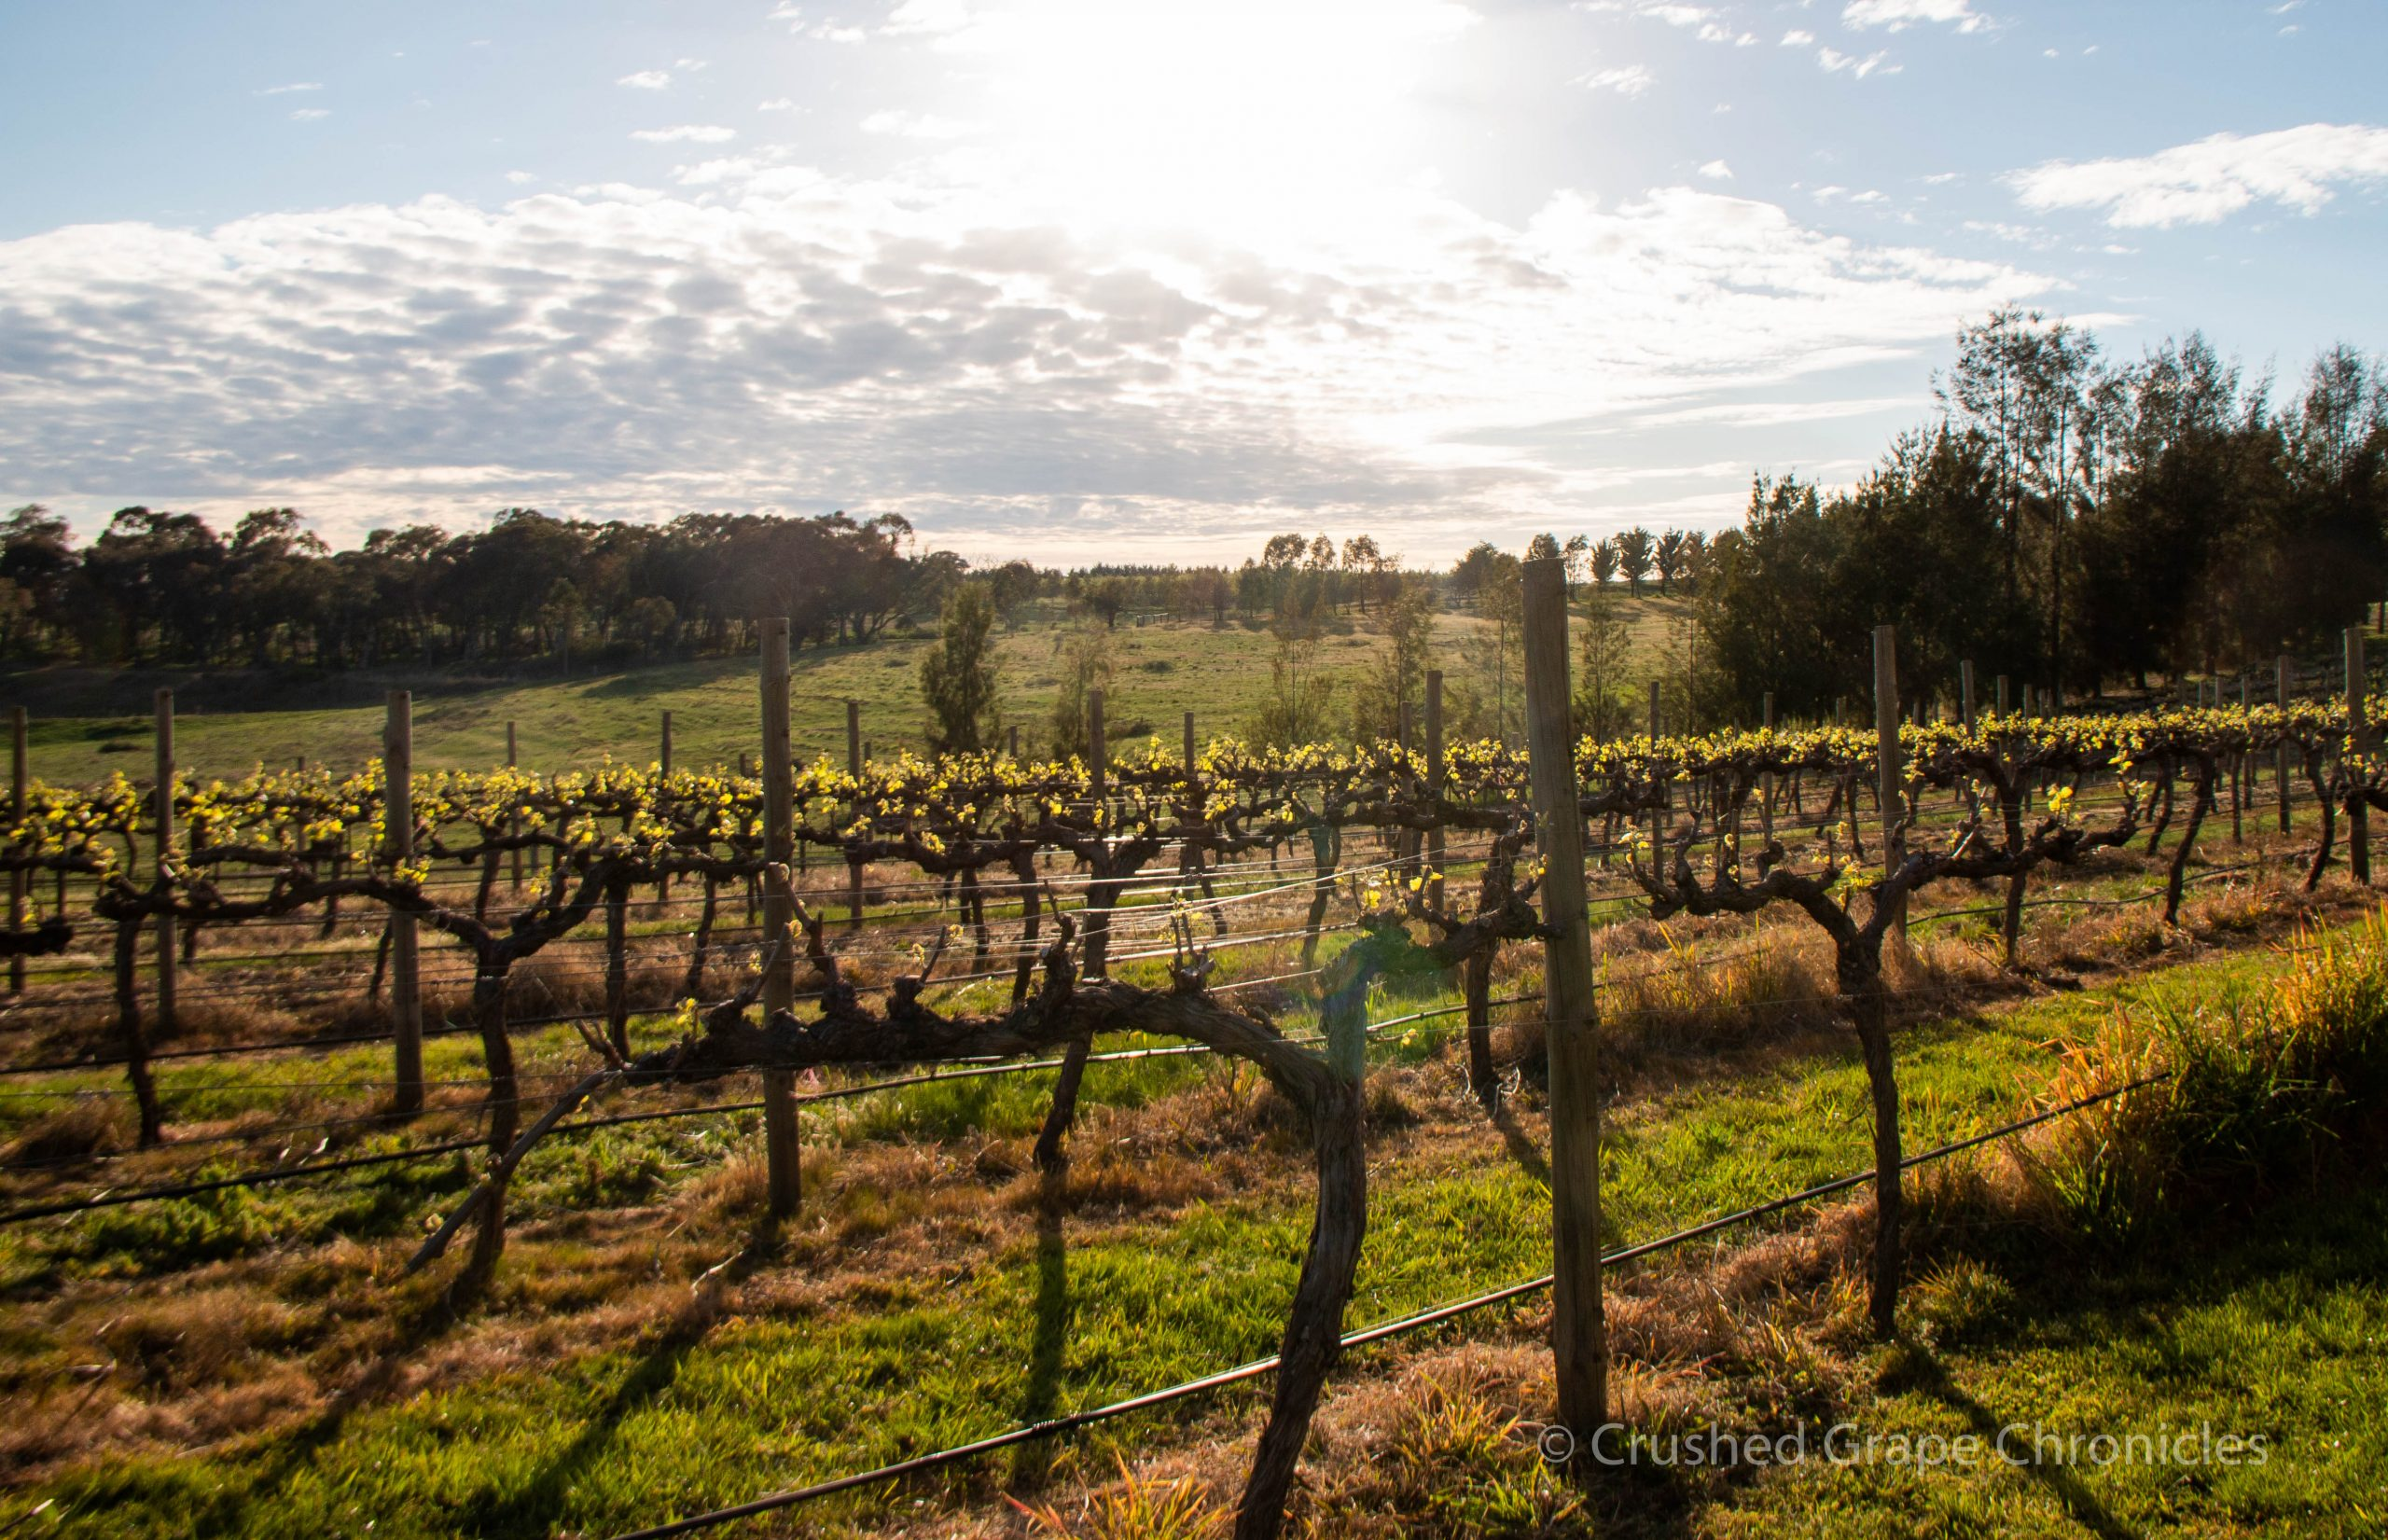 The vineyard view at Nashdale Lane, Orange NSW Australia